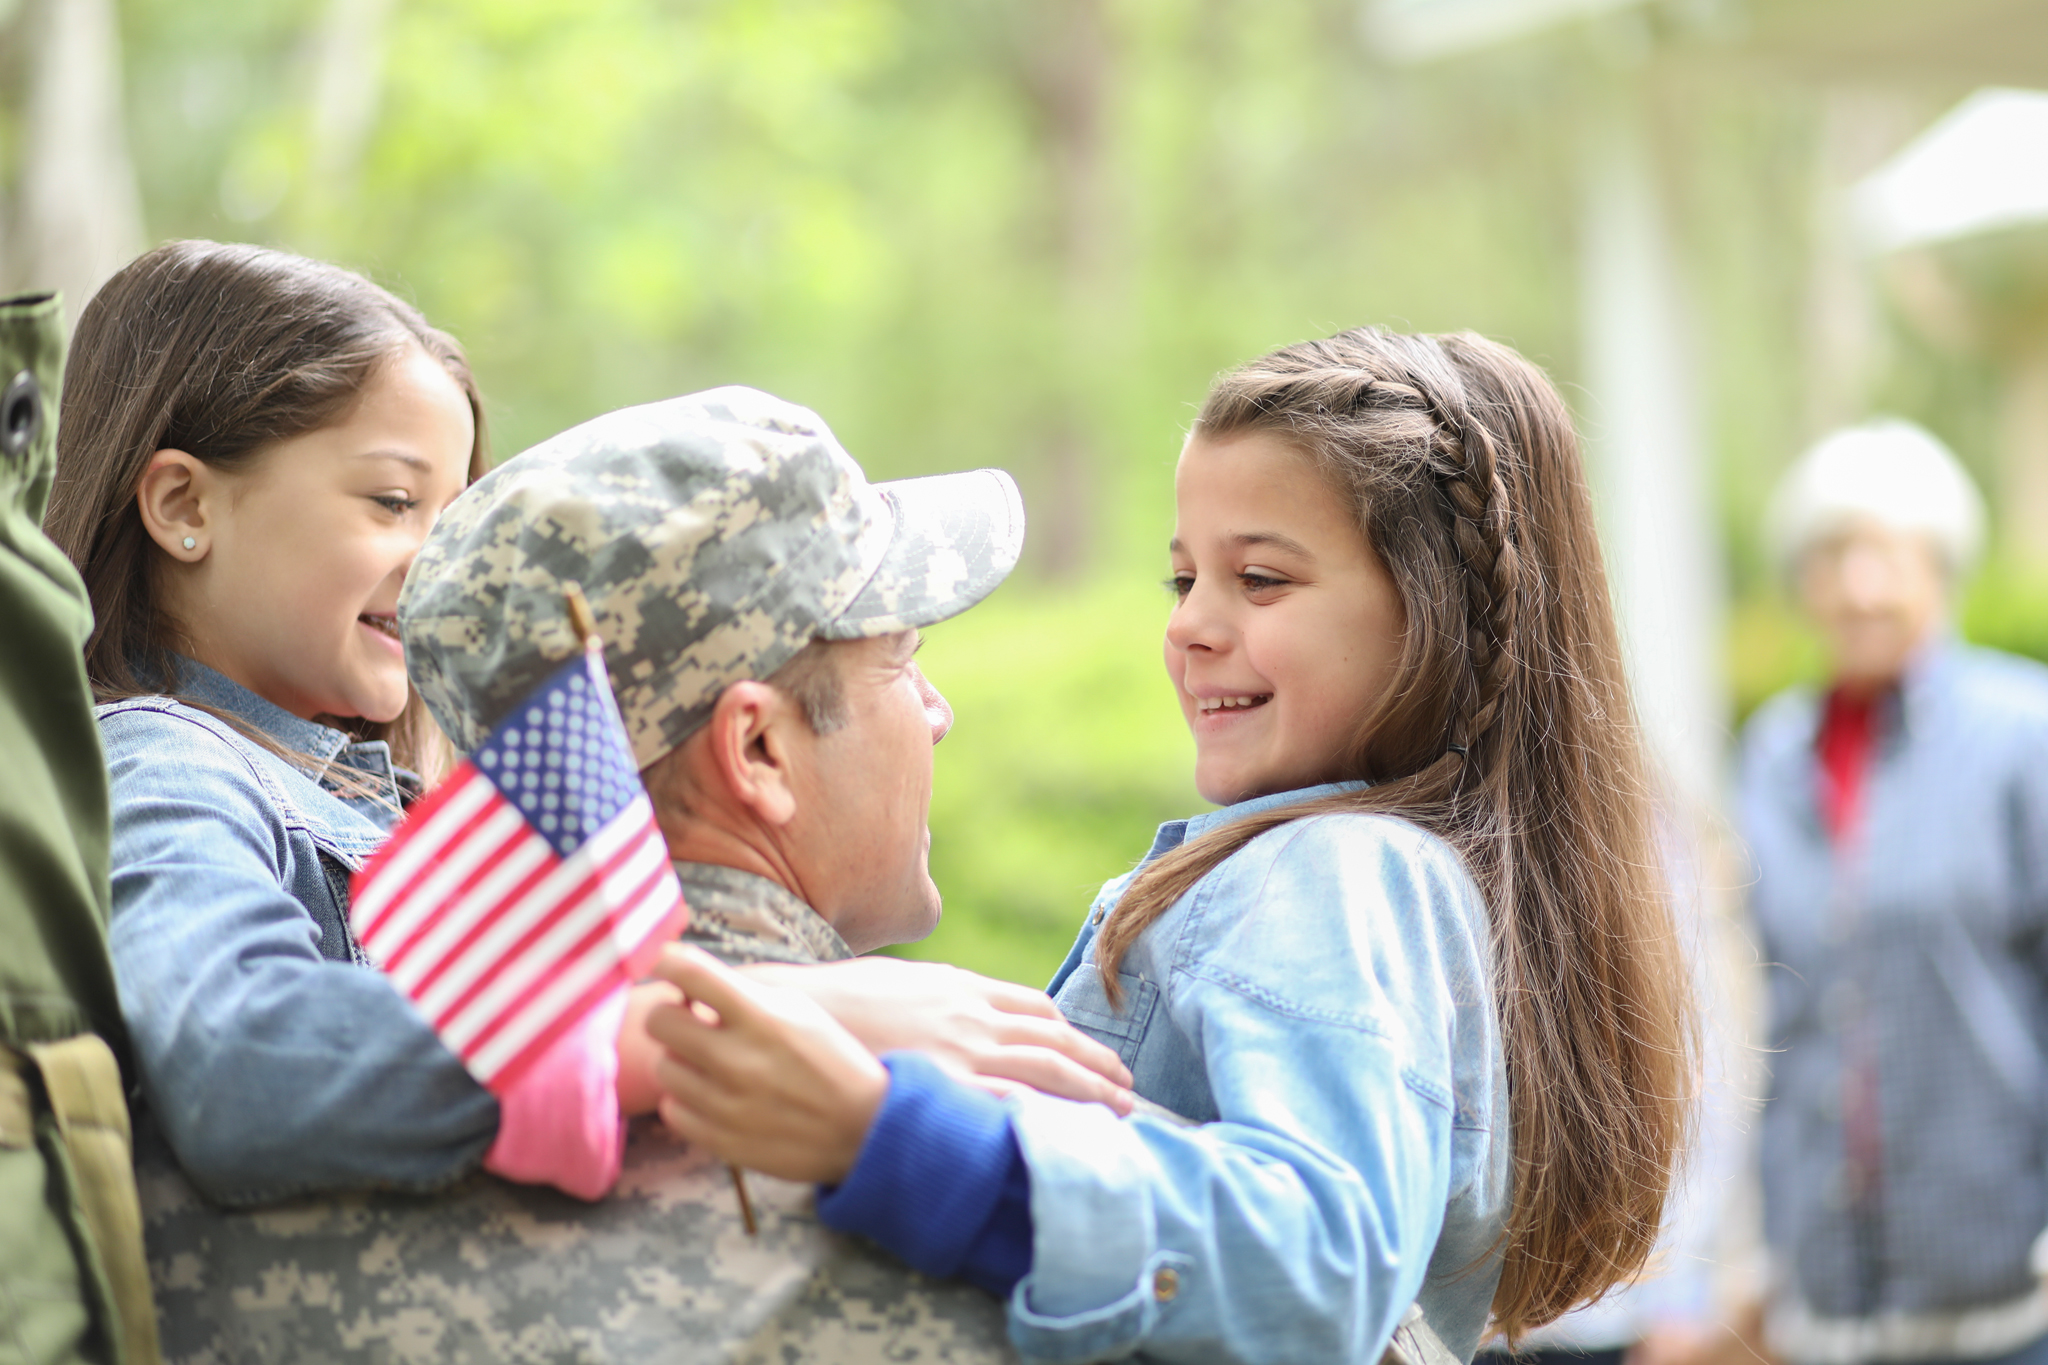 Military father in uniform with younger children holding American flag